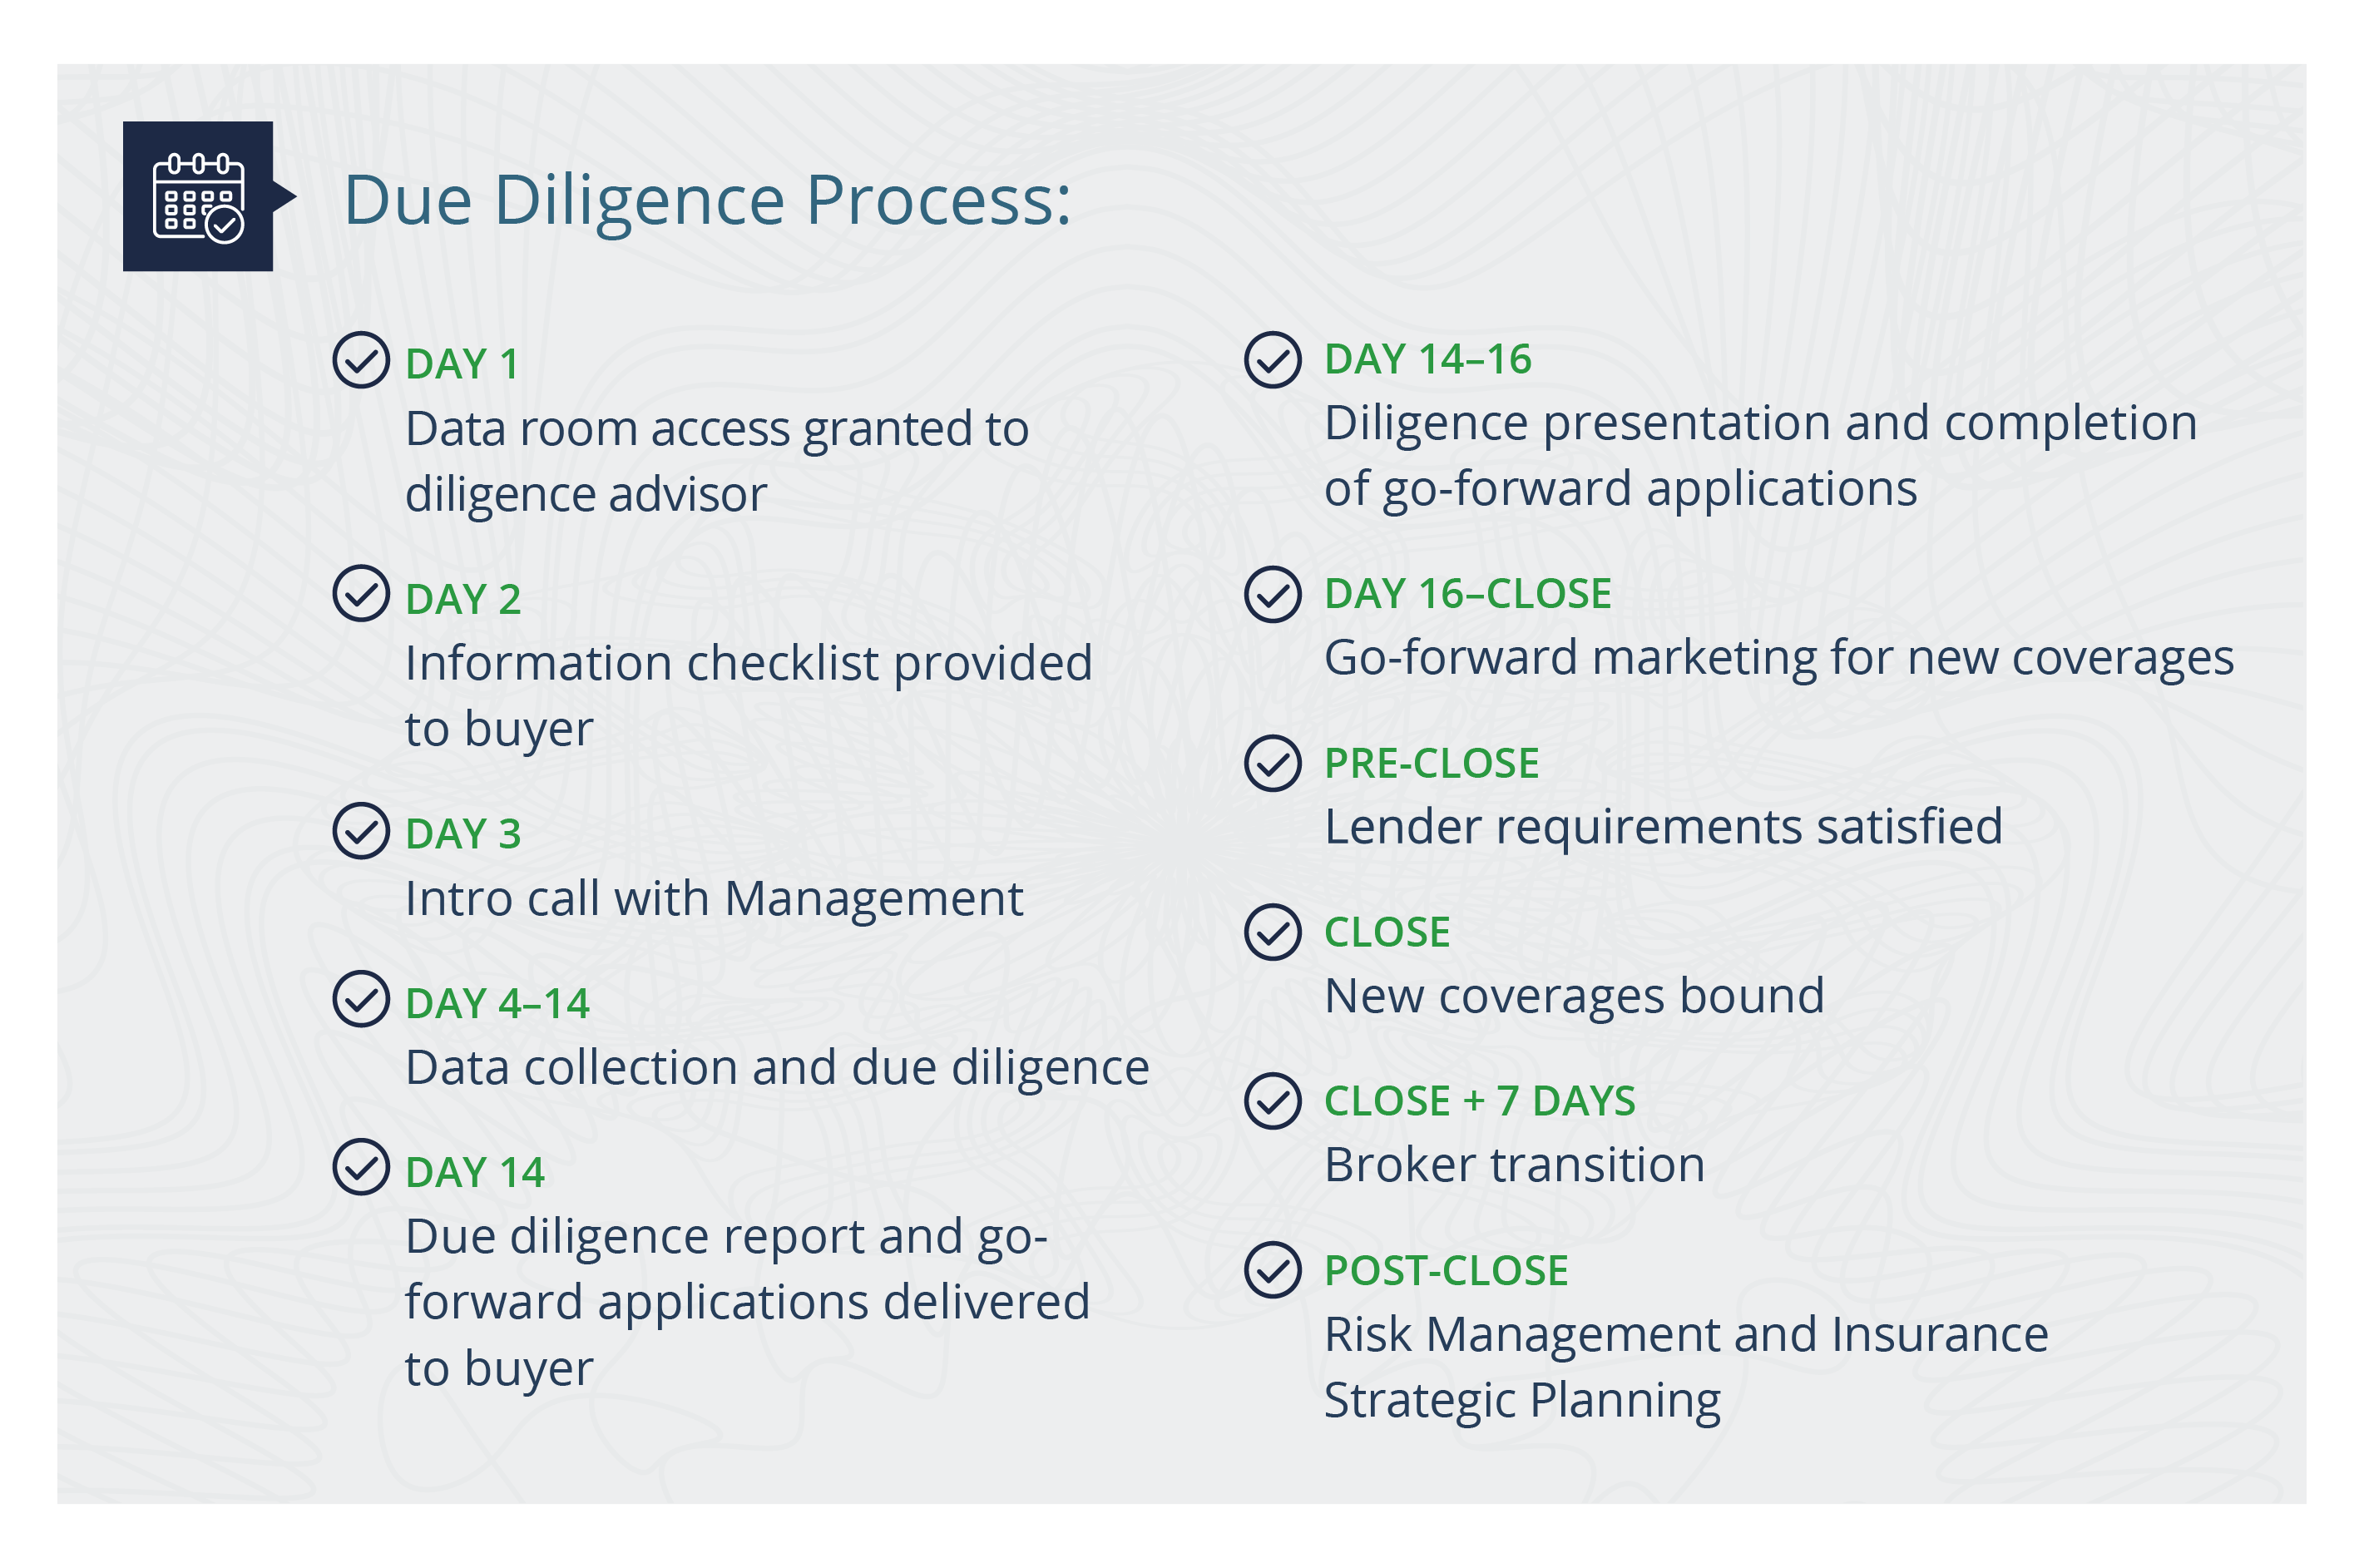 Due Diligence Process from Day 1 to Post-Close